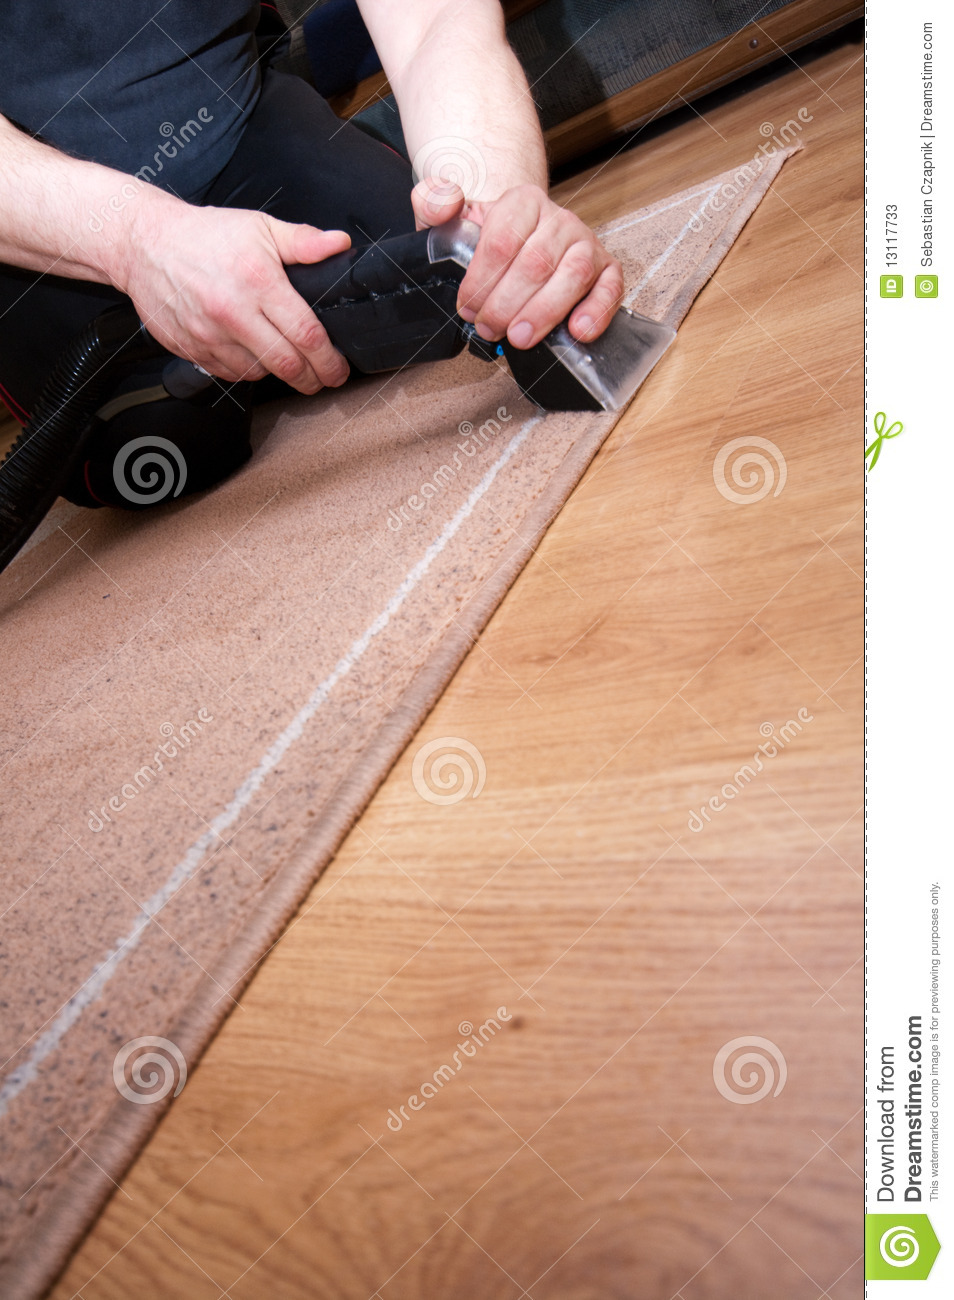 Professional Carpet Cleaning Stock Photos Image 13117733